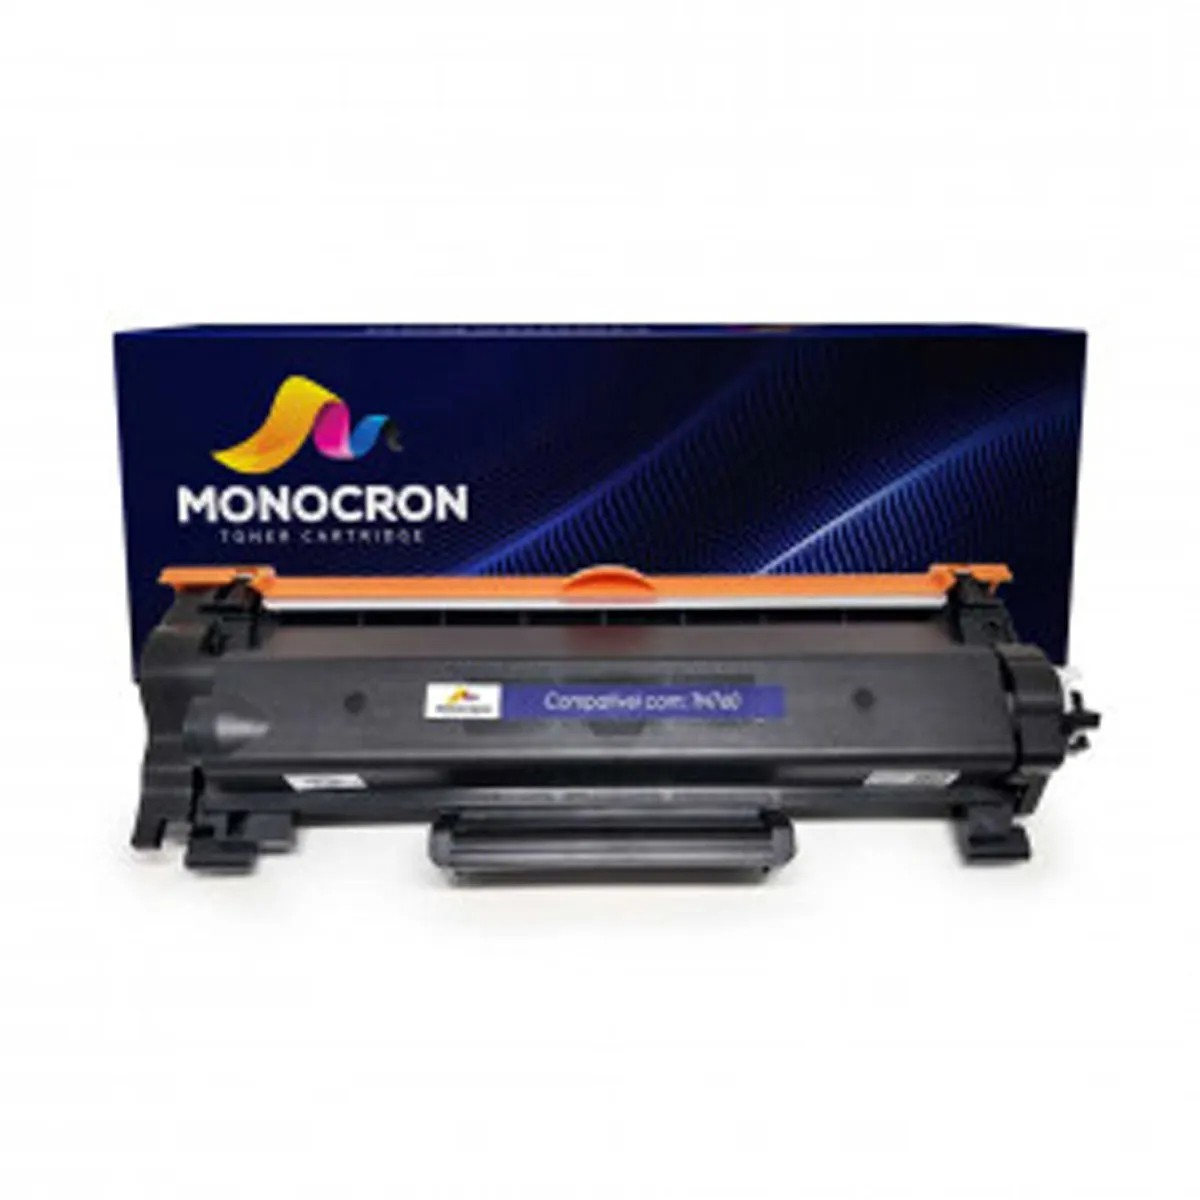 Toner Compativel Brother TN760 760 L2550 L2370 L2390 L2395 L2710 L2750